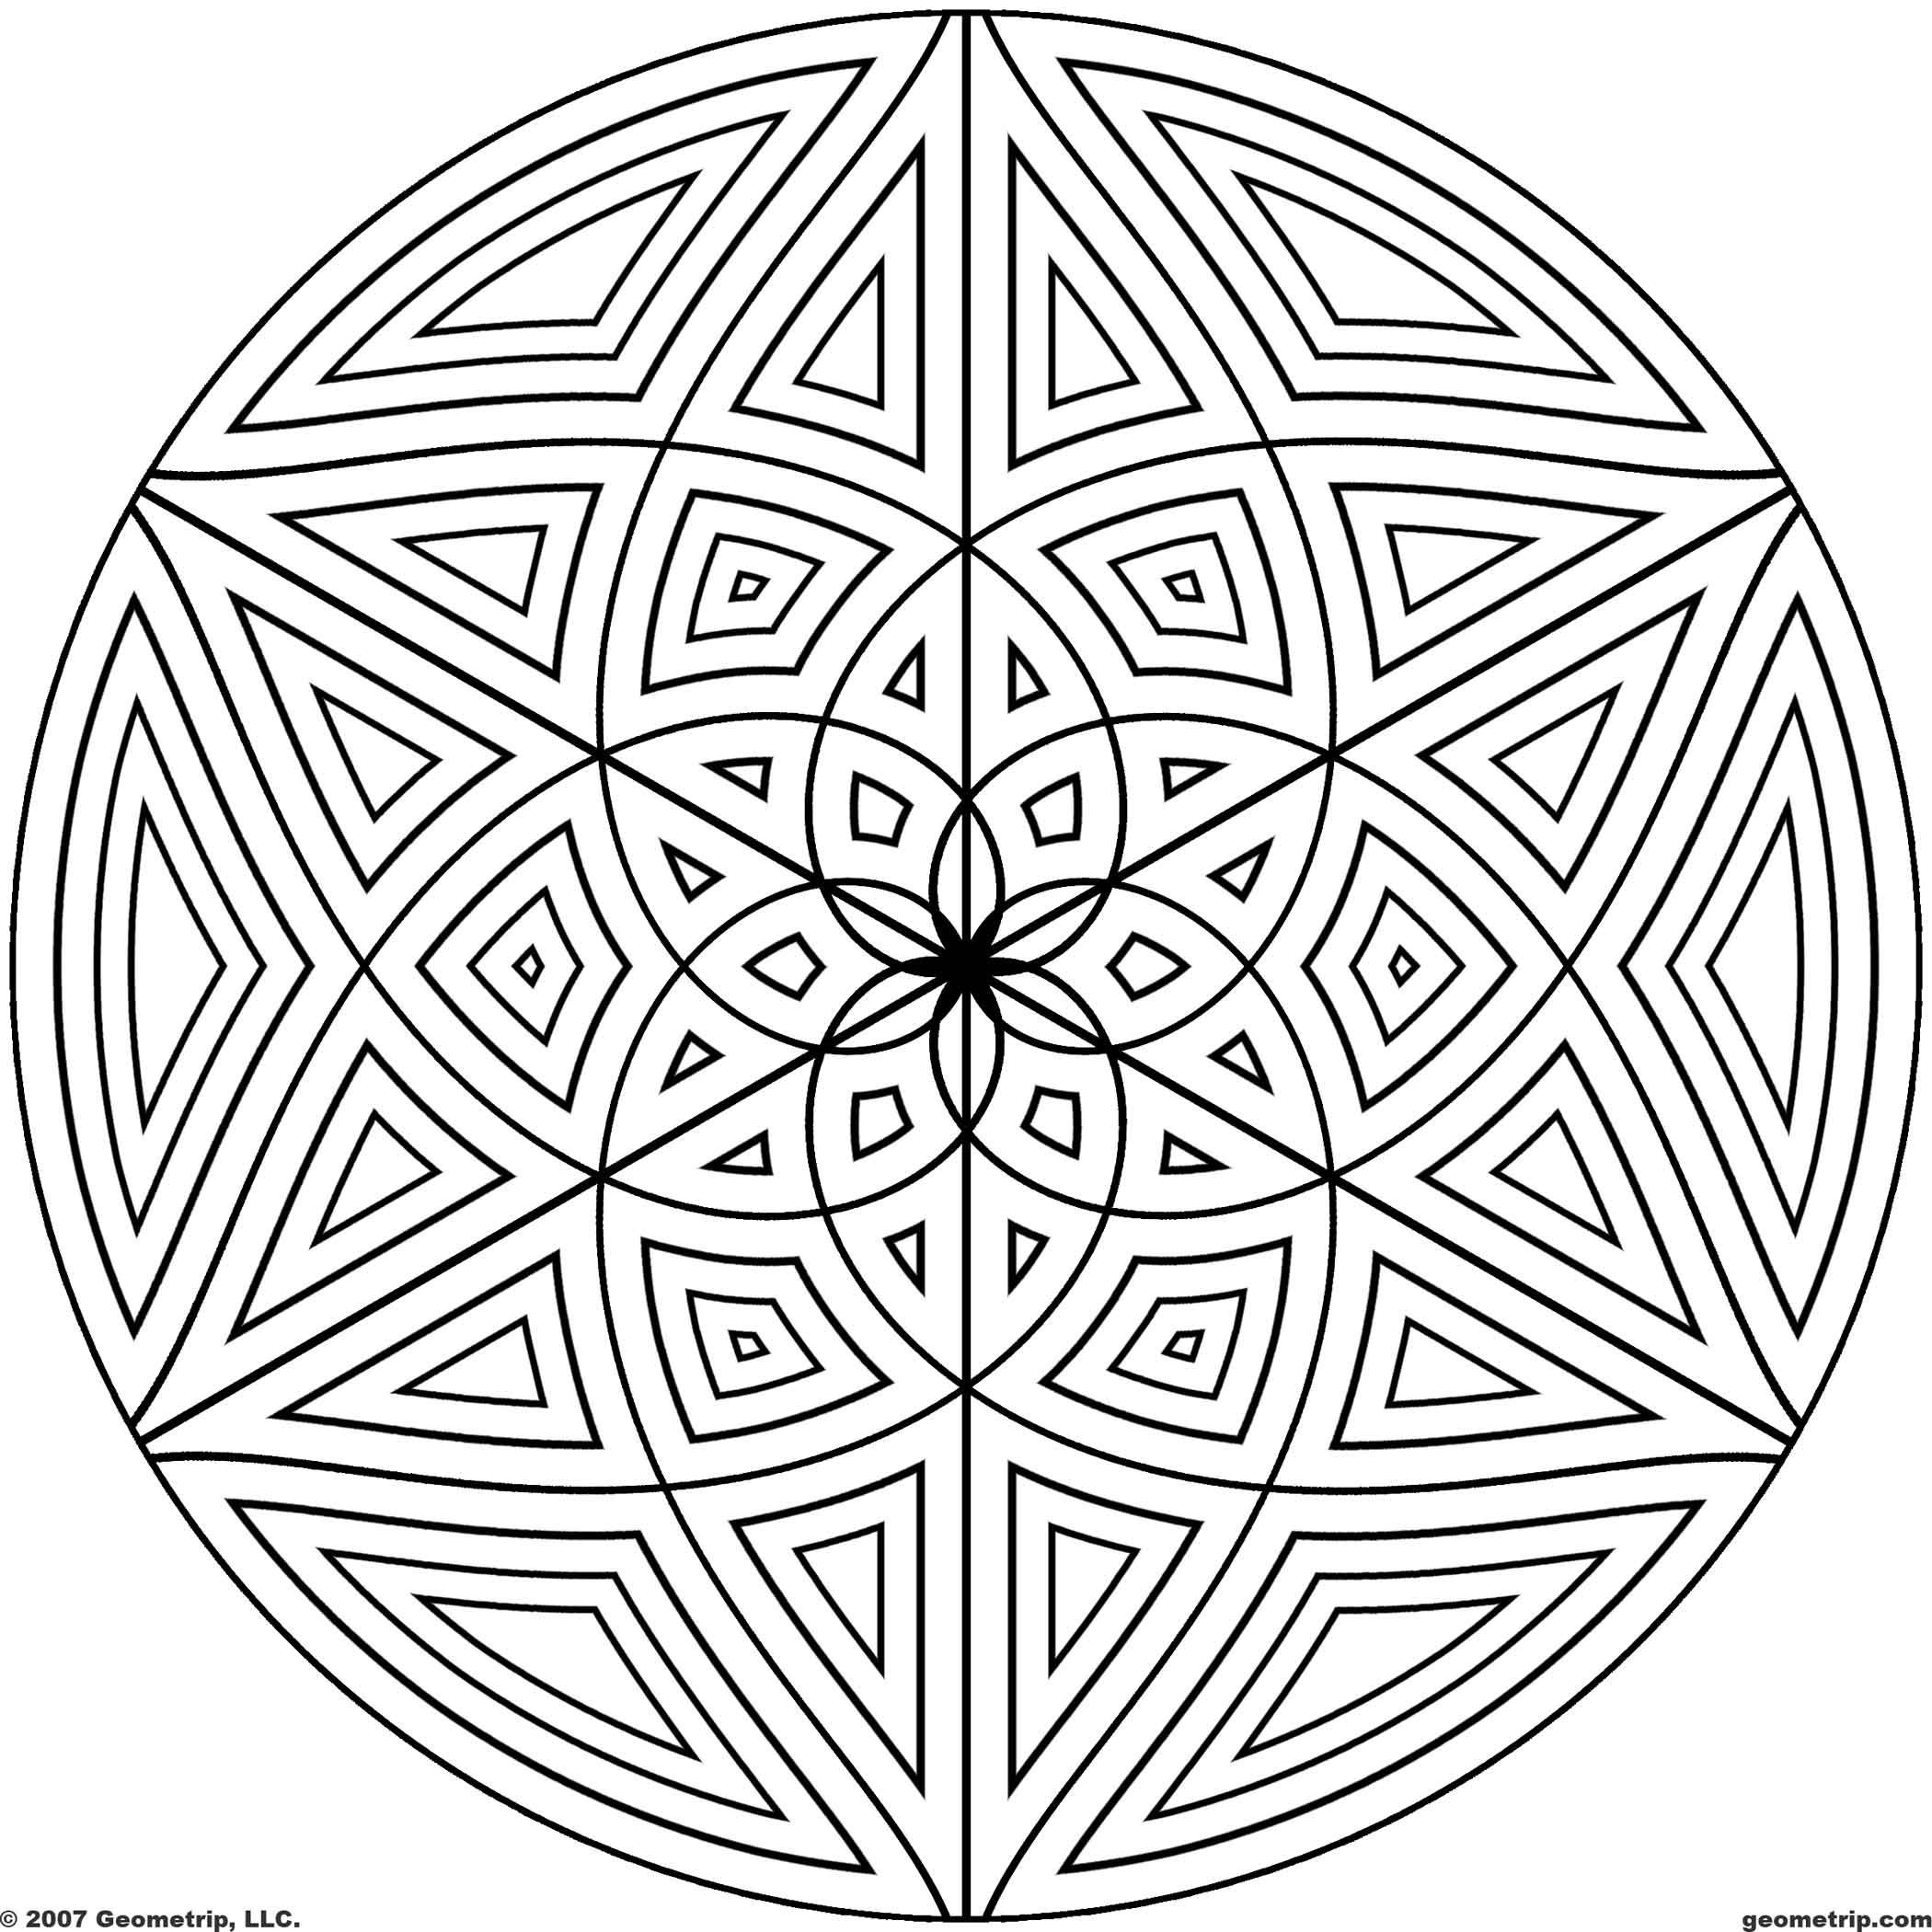 Printable coloring pages geometric patterns - Geometric Patterns